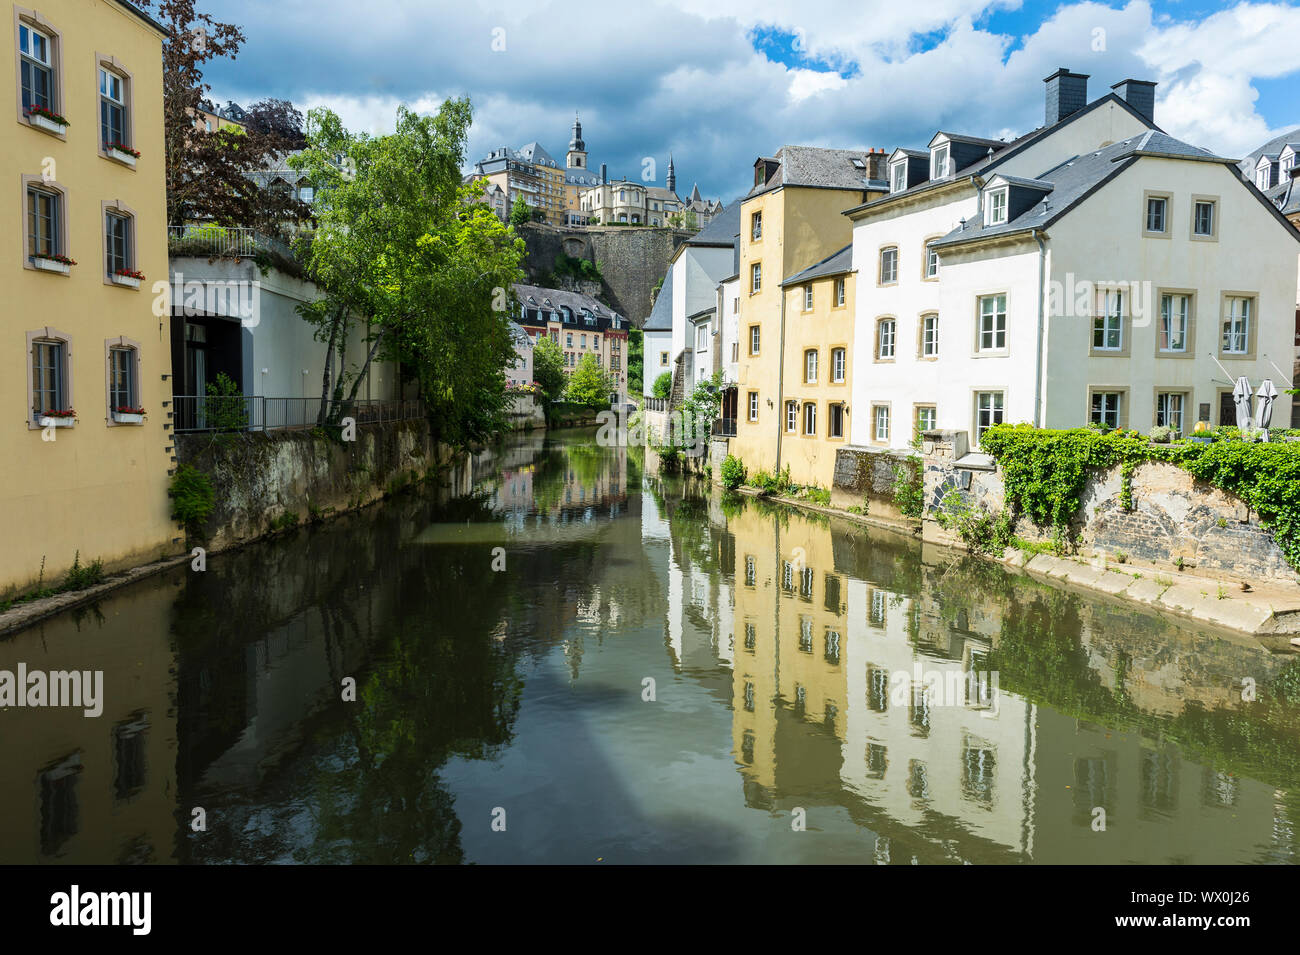 The old quarter of Luxembourg, UNESCO World Heritage Site, Luxembourg, Europe Stock Photo